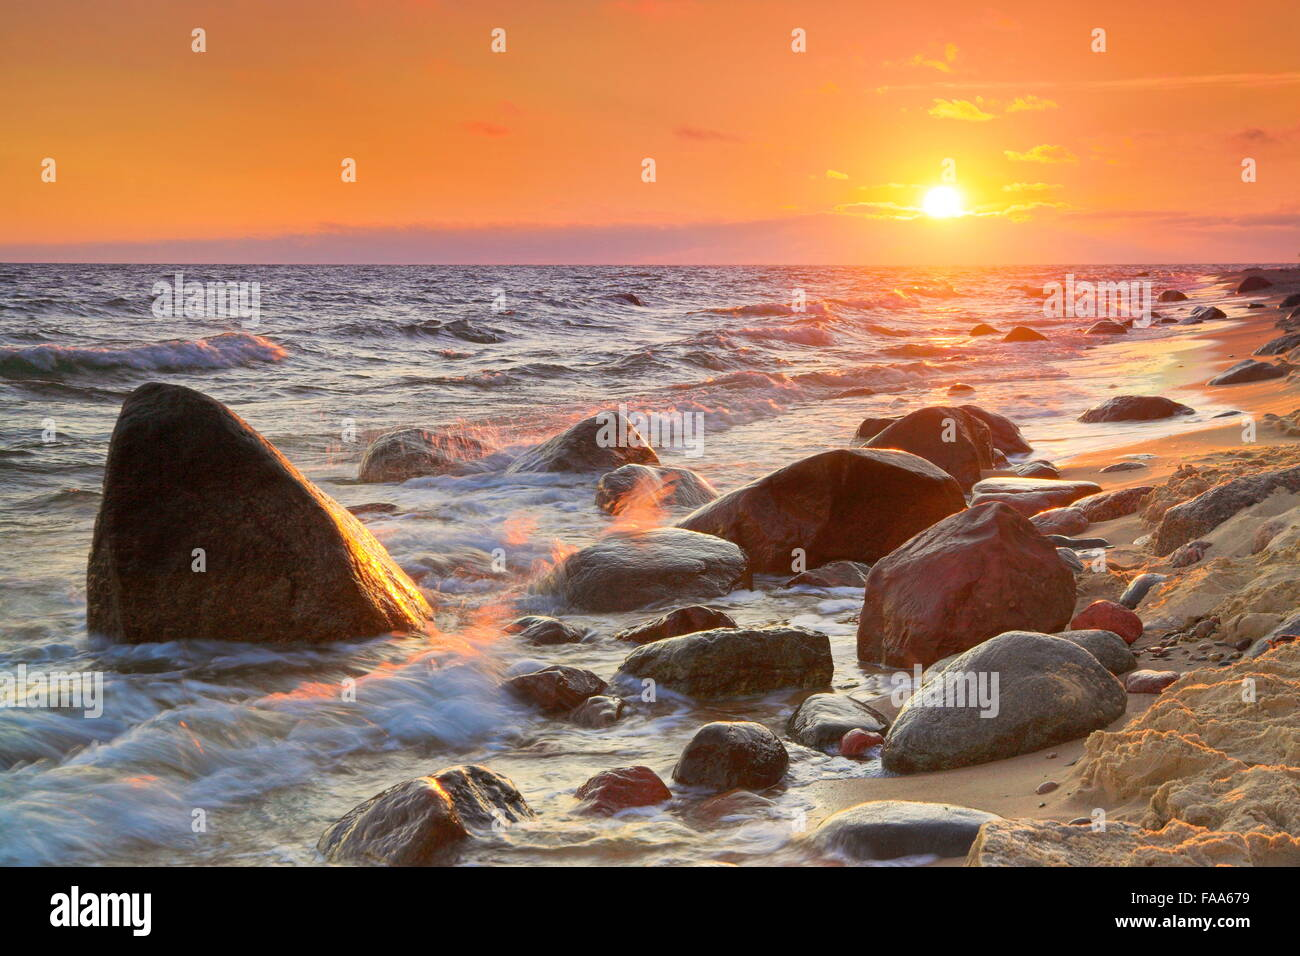 Au coucher du soleil, de la mer Baltique occidentale, Pologne Photo Stock